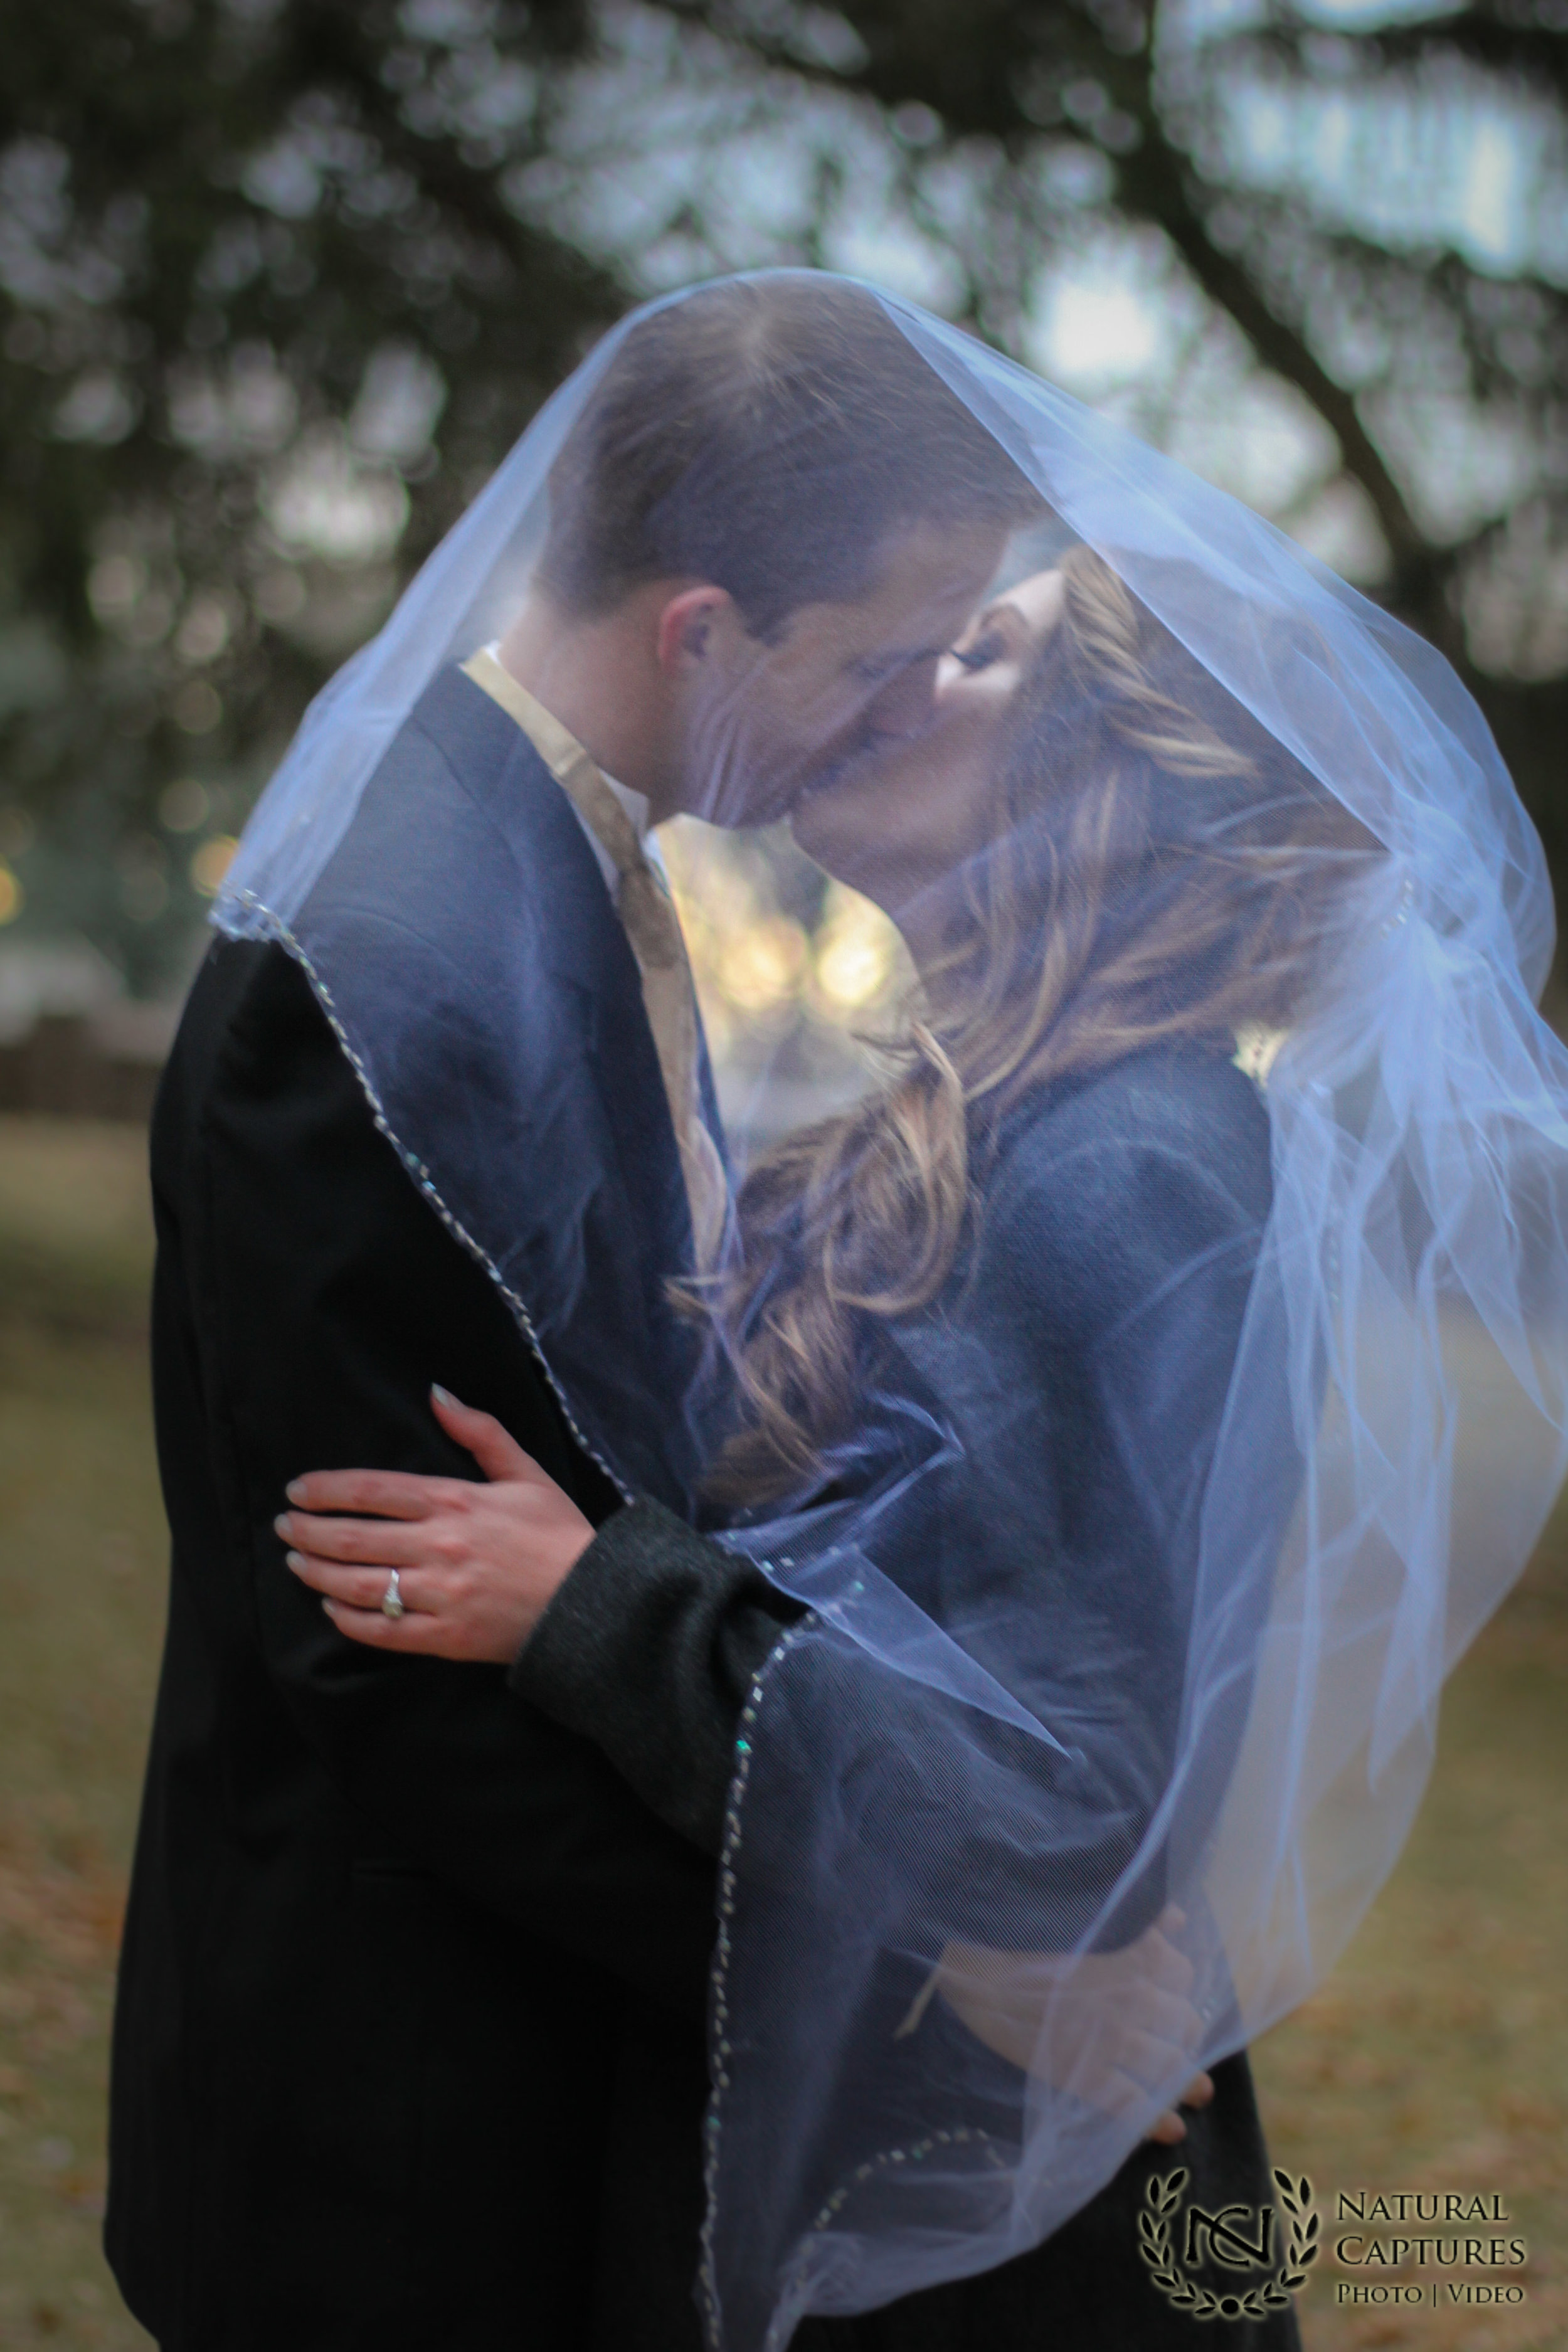 Bride & Groom under Veil kissing